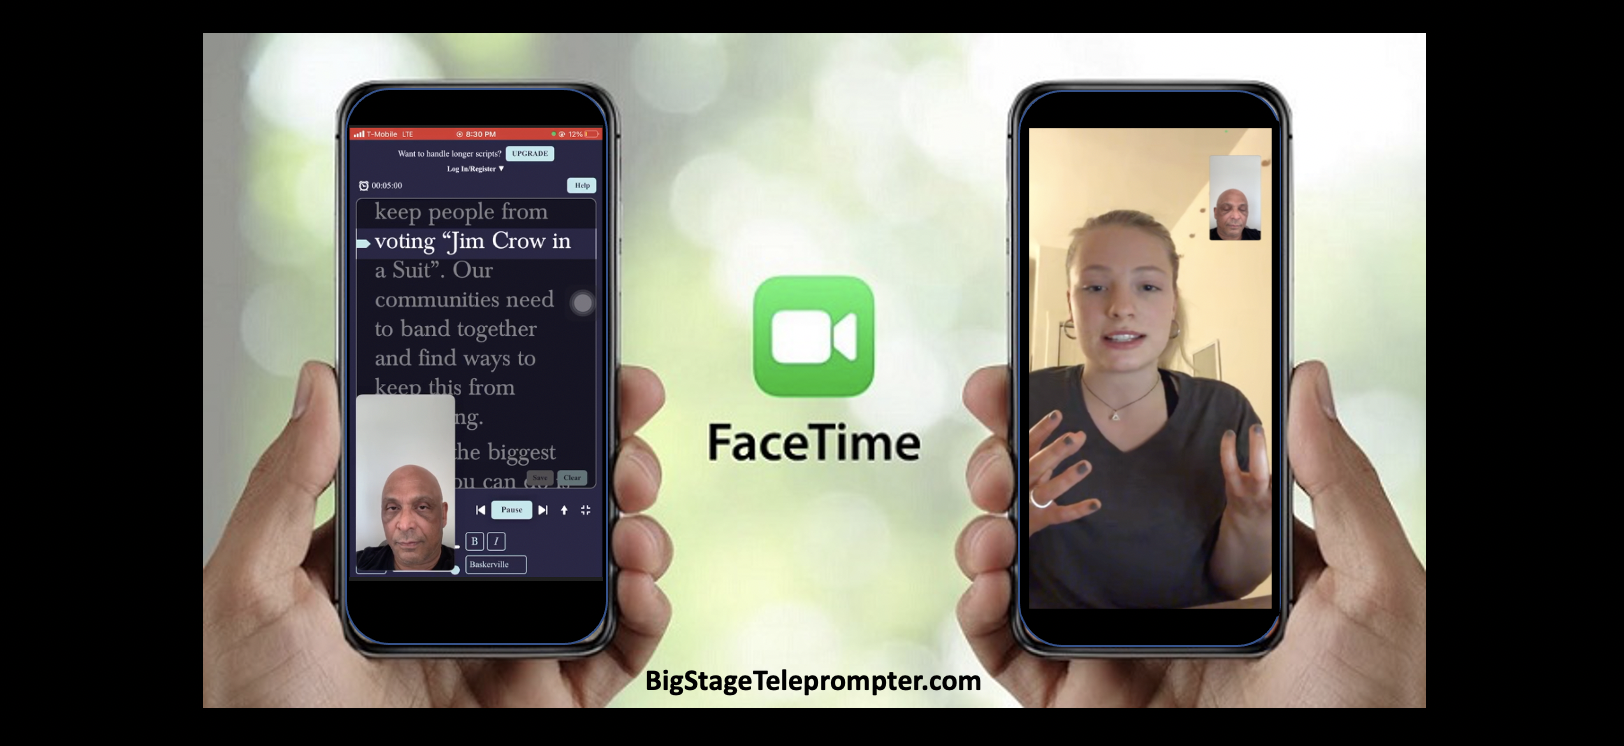 Activists canvas for HR For The People Act over FaceTime with the fre e BigStage Teleprompter app